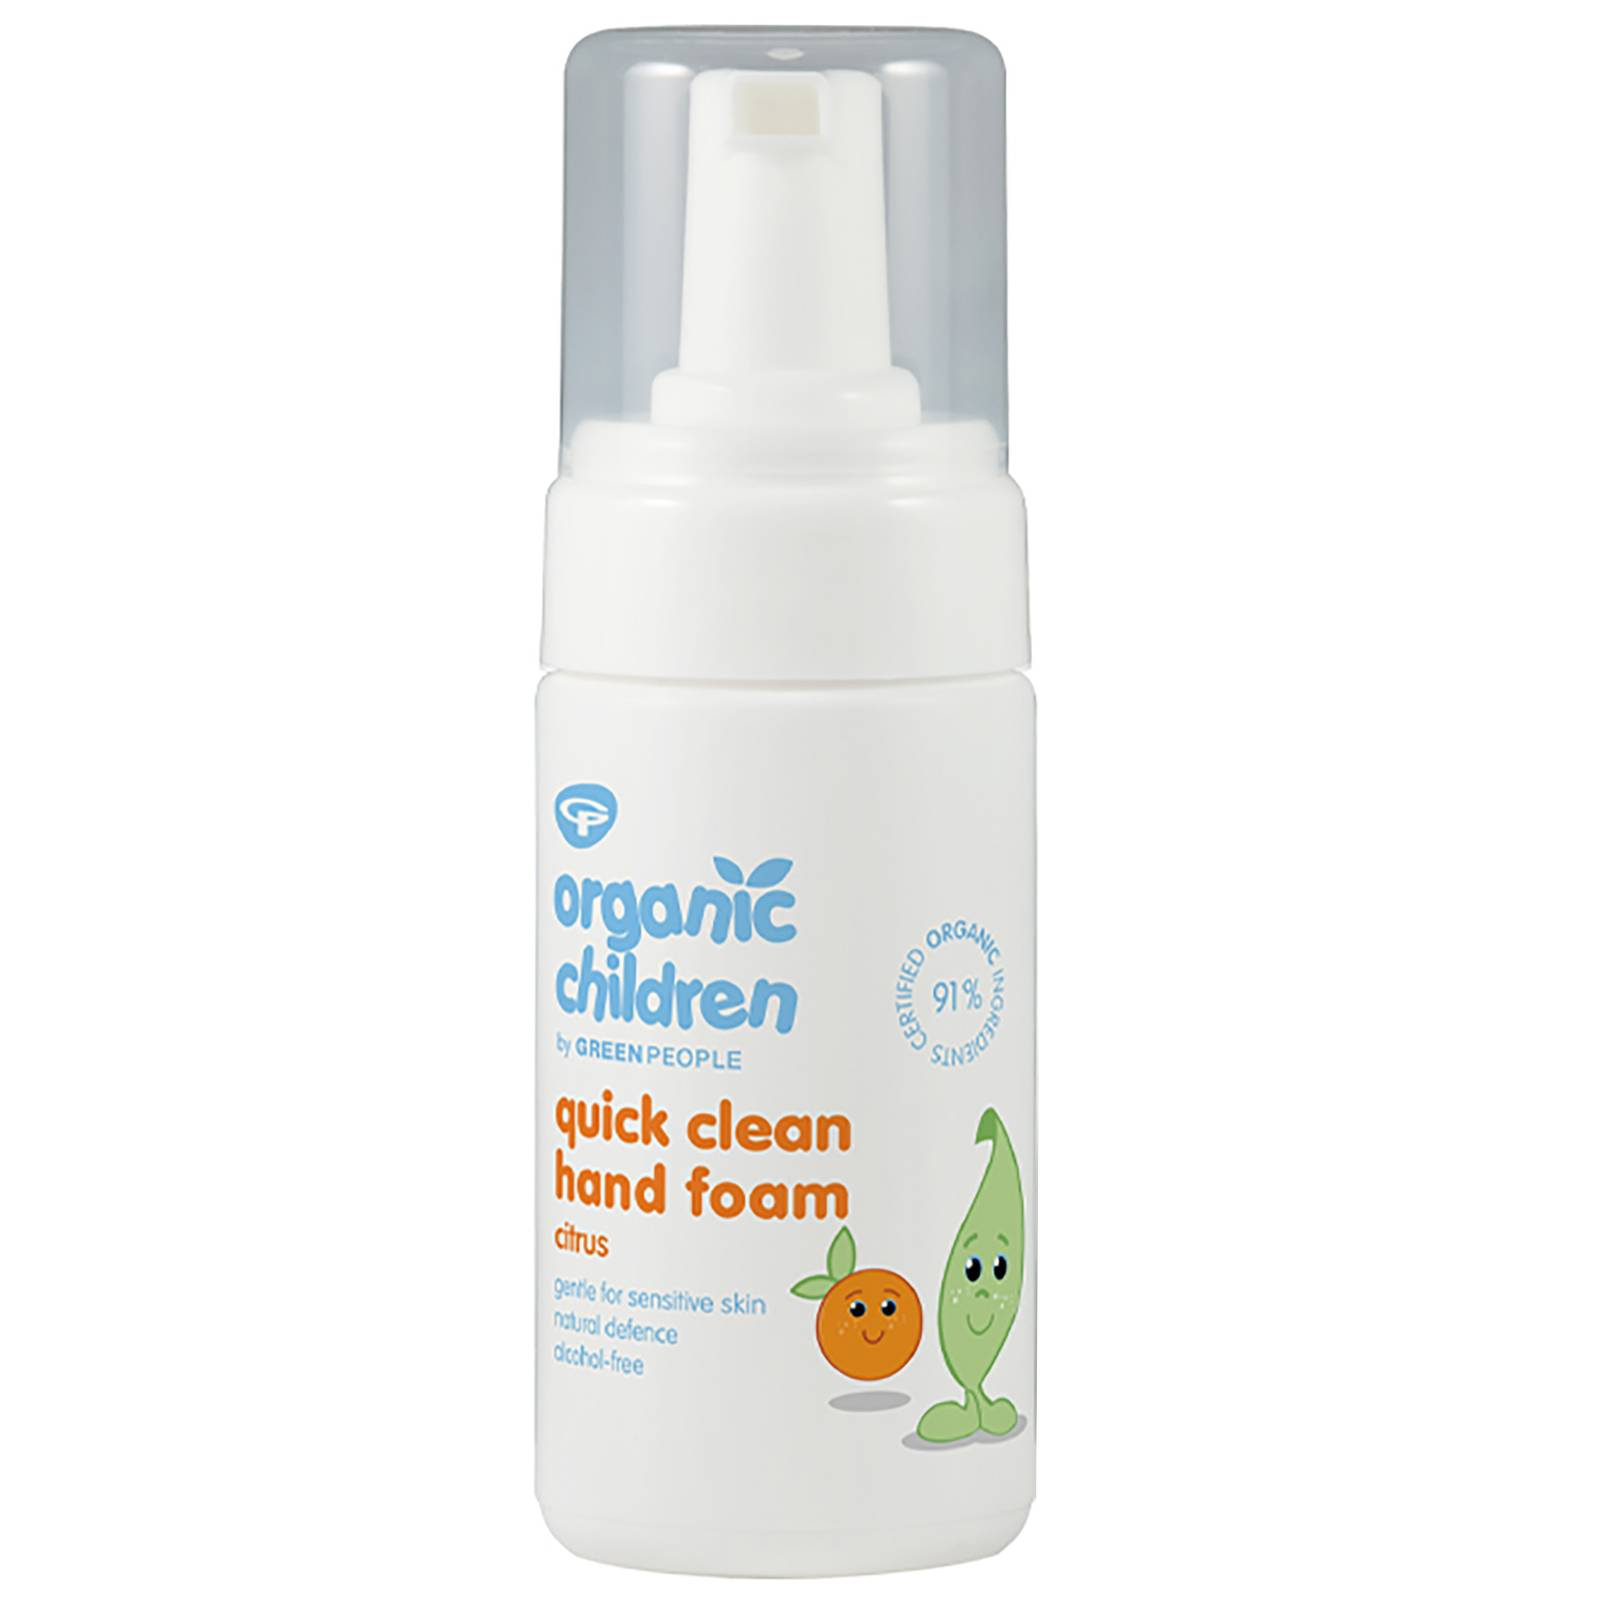 Green People - Organic Children Hand Sanitiser 100ml for Women